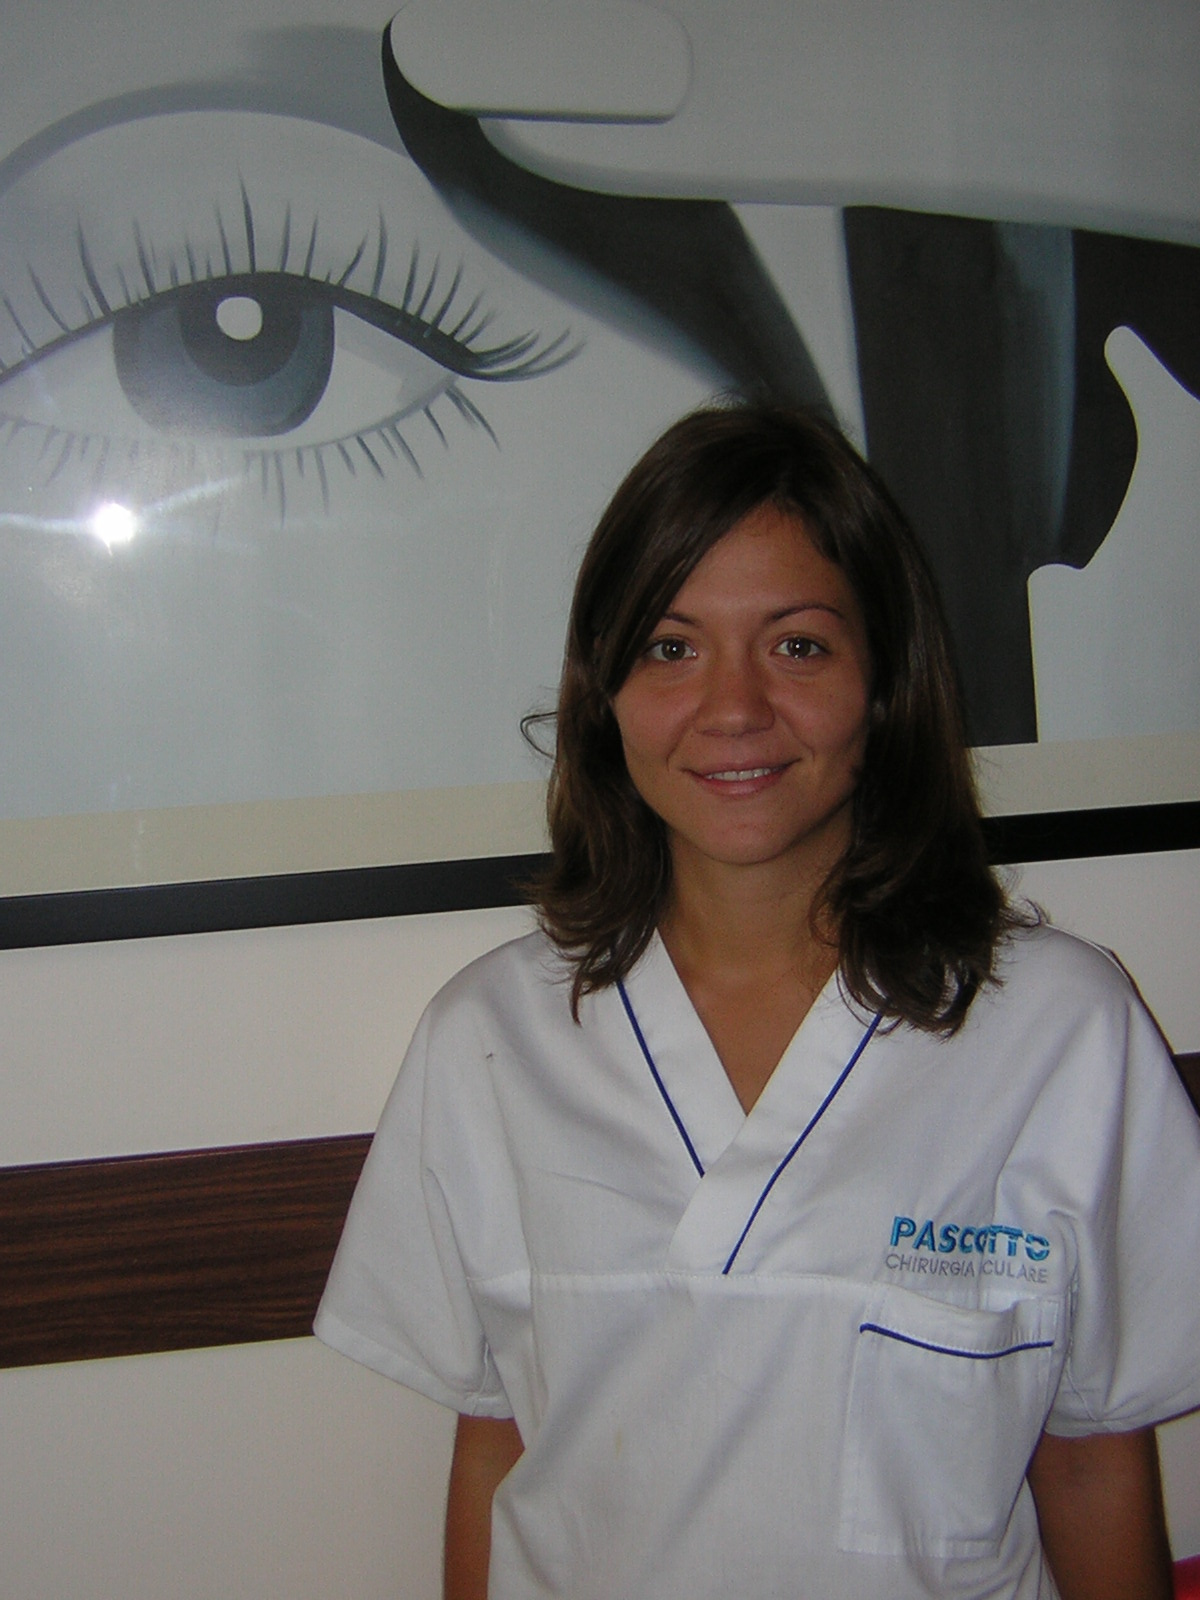 Marcella Pascotto